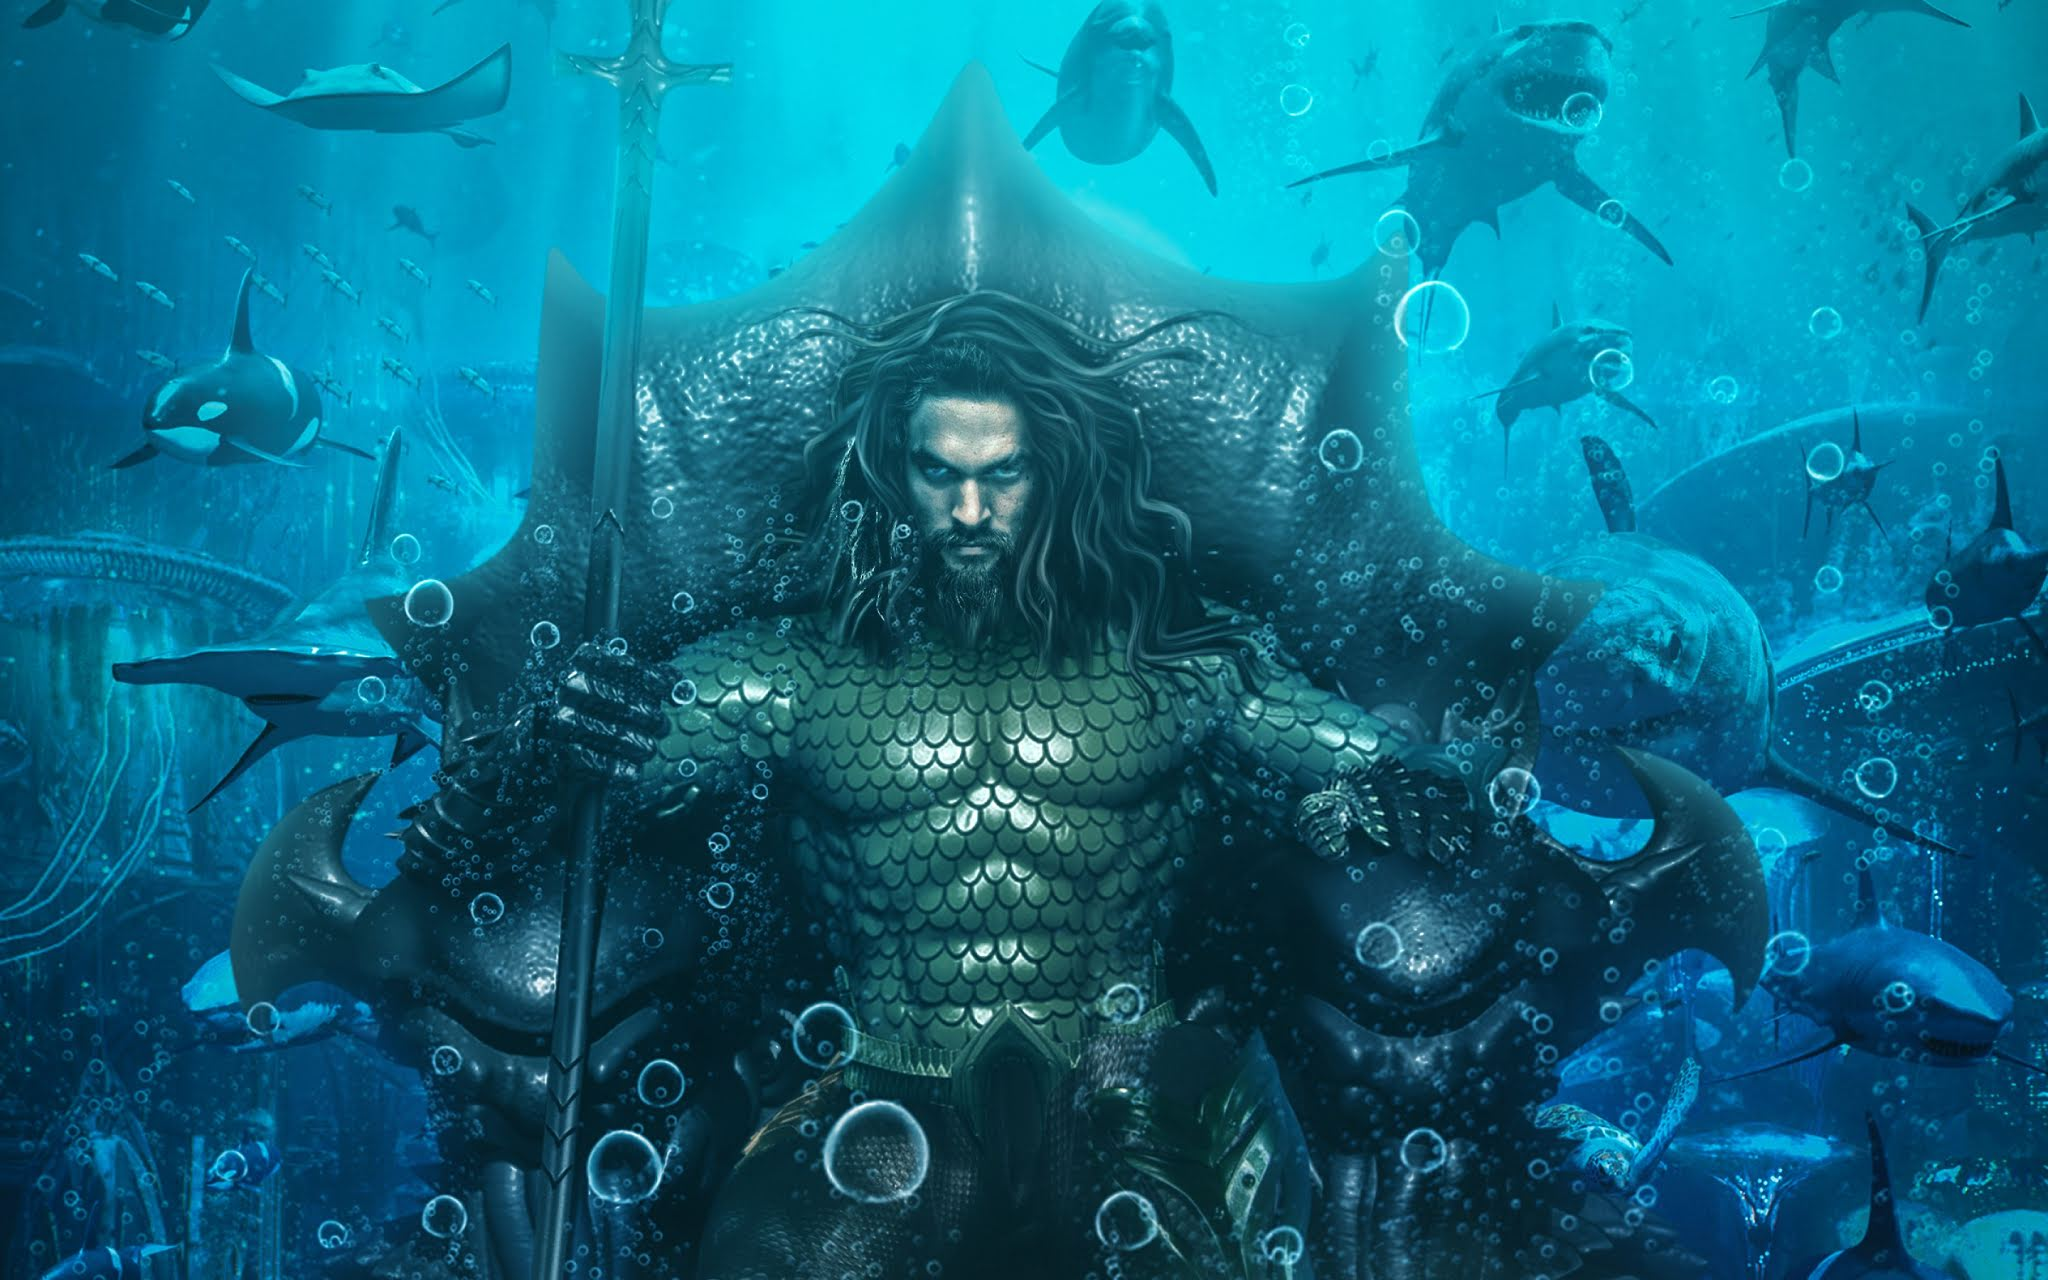 Aquaman Dc Comics Hd Wallpaper Xfxwallpapers Free Hd Wallpapers